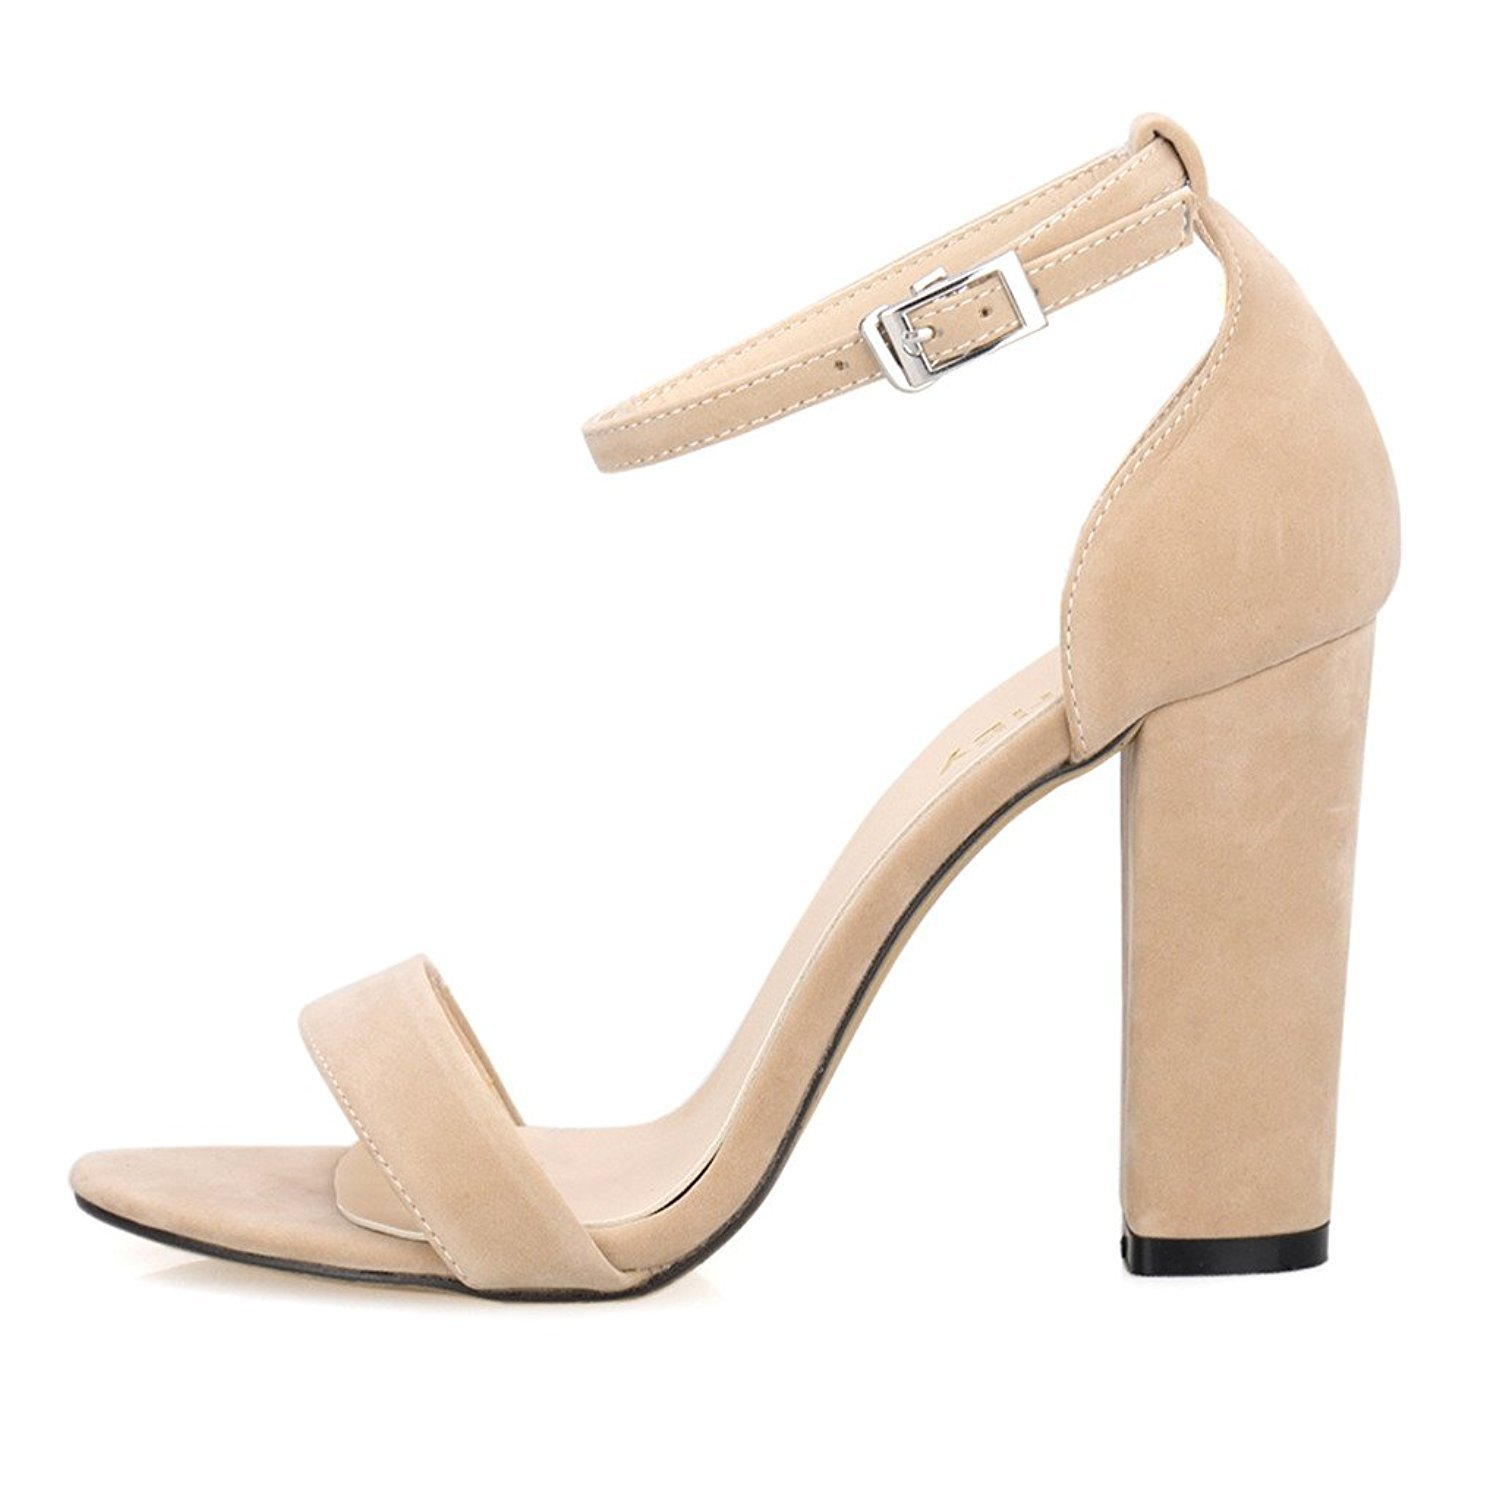 d270f1fe7a3 ZriEy Women s Chunky Block Strappy High Heel Sandals Fashion Simple Ankle  Strap Open Toe Shoes for Formal Dress Wedding Party